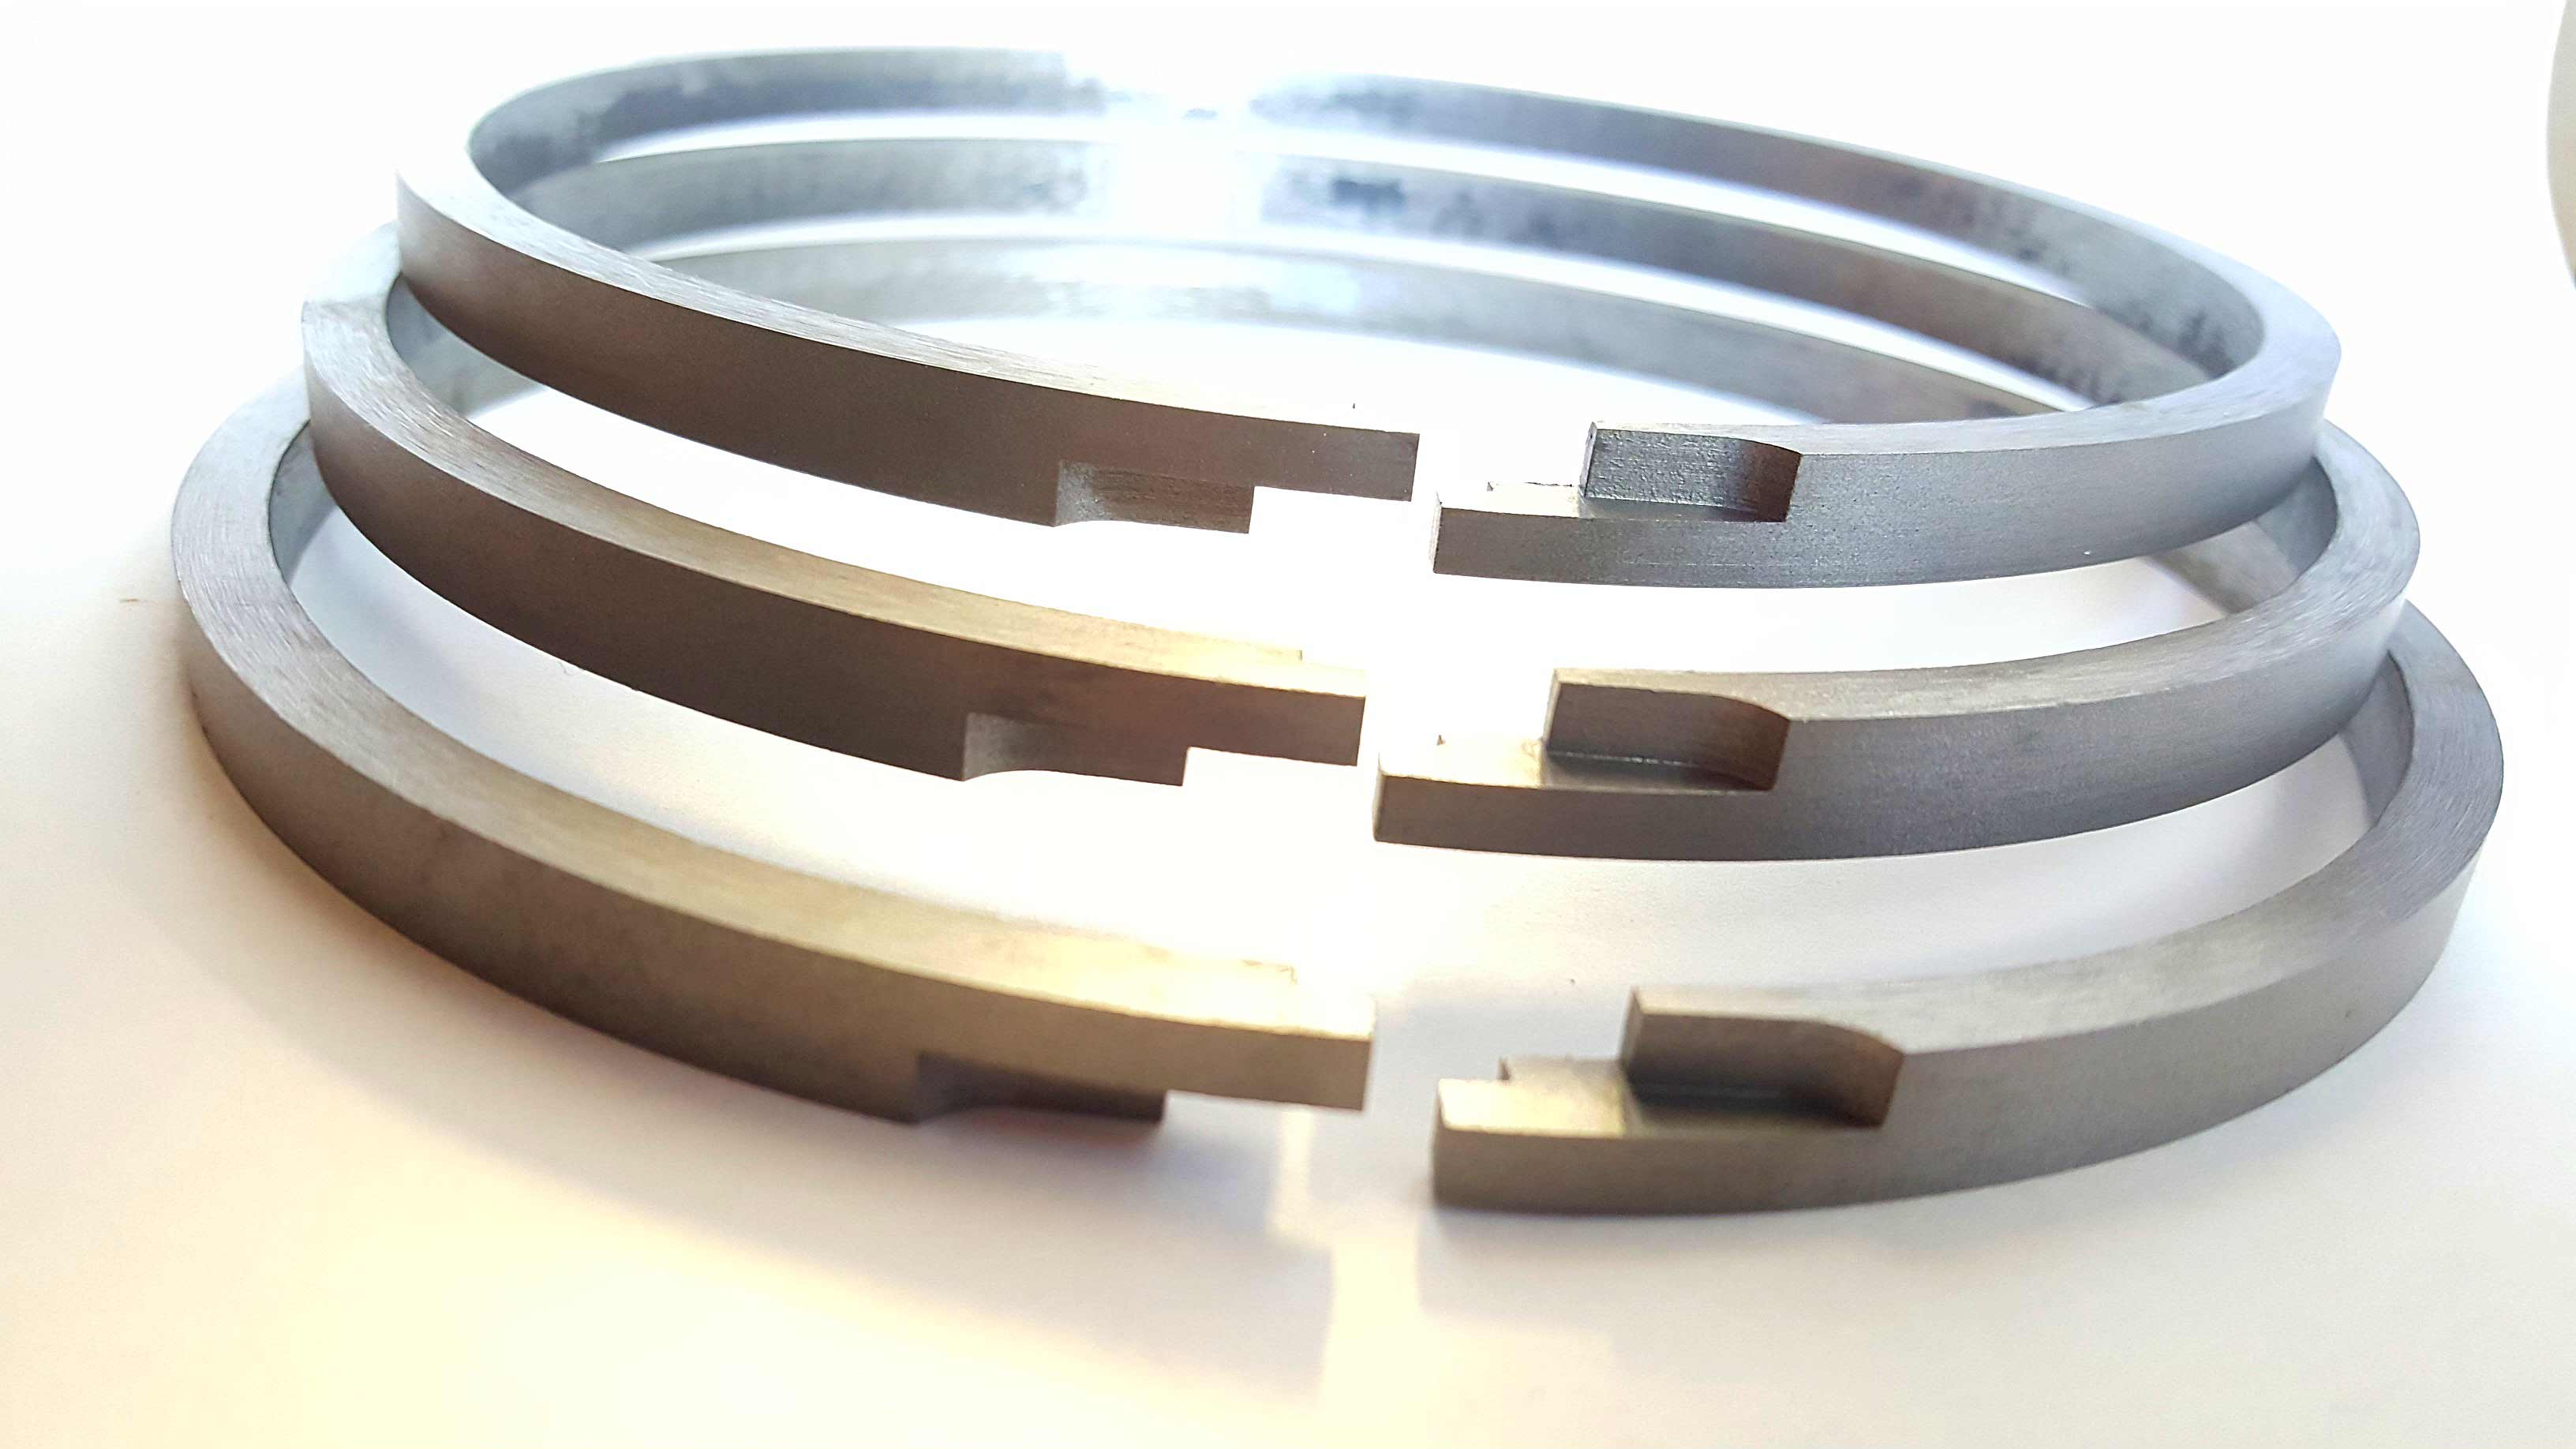 Ultra seal piston ring joint configuration